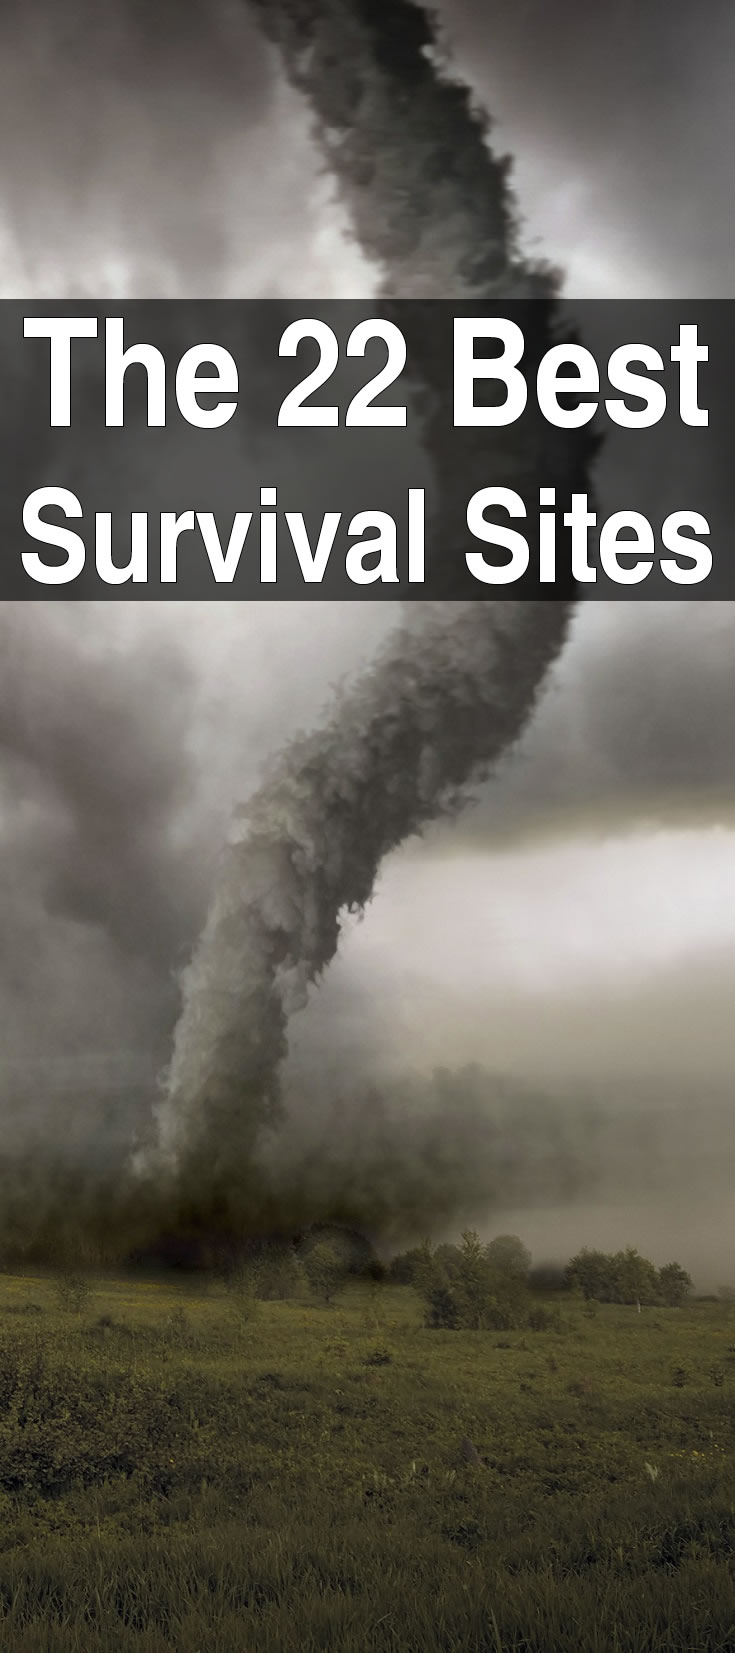 Best Survival Sites